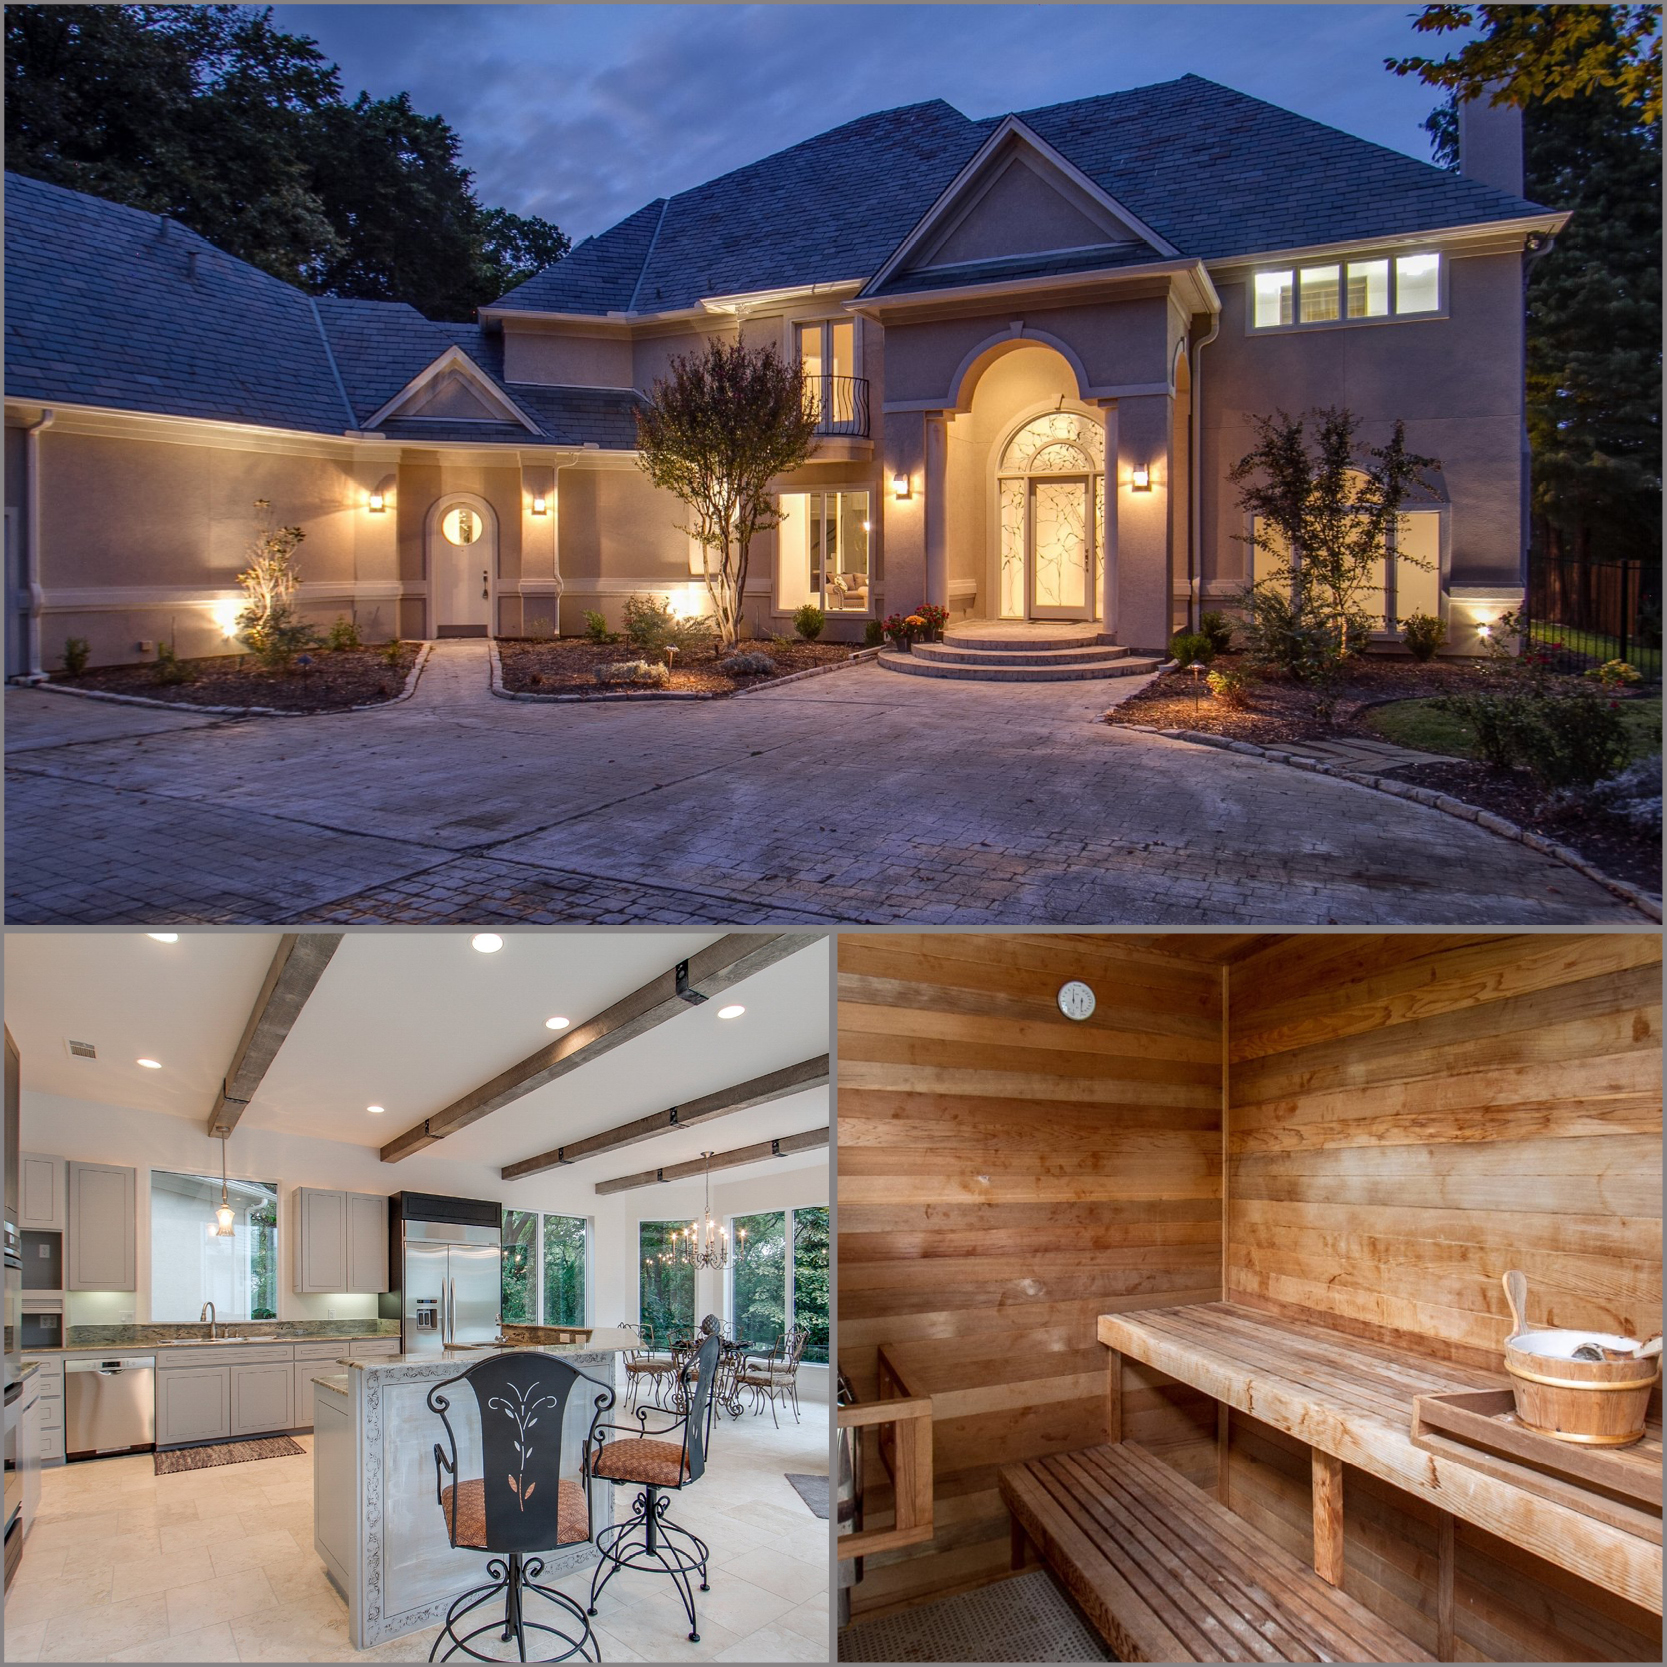 What $1 Million Gets You in DFW